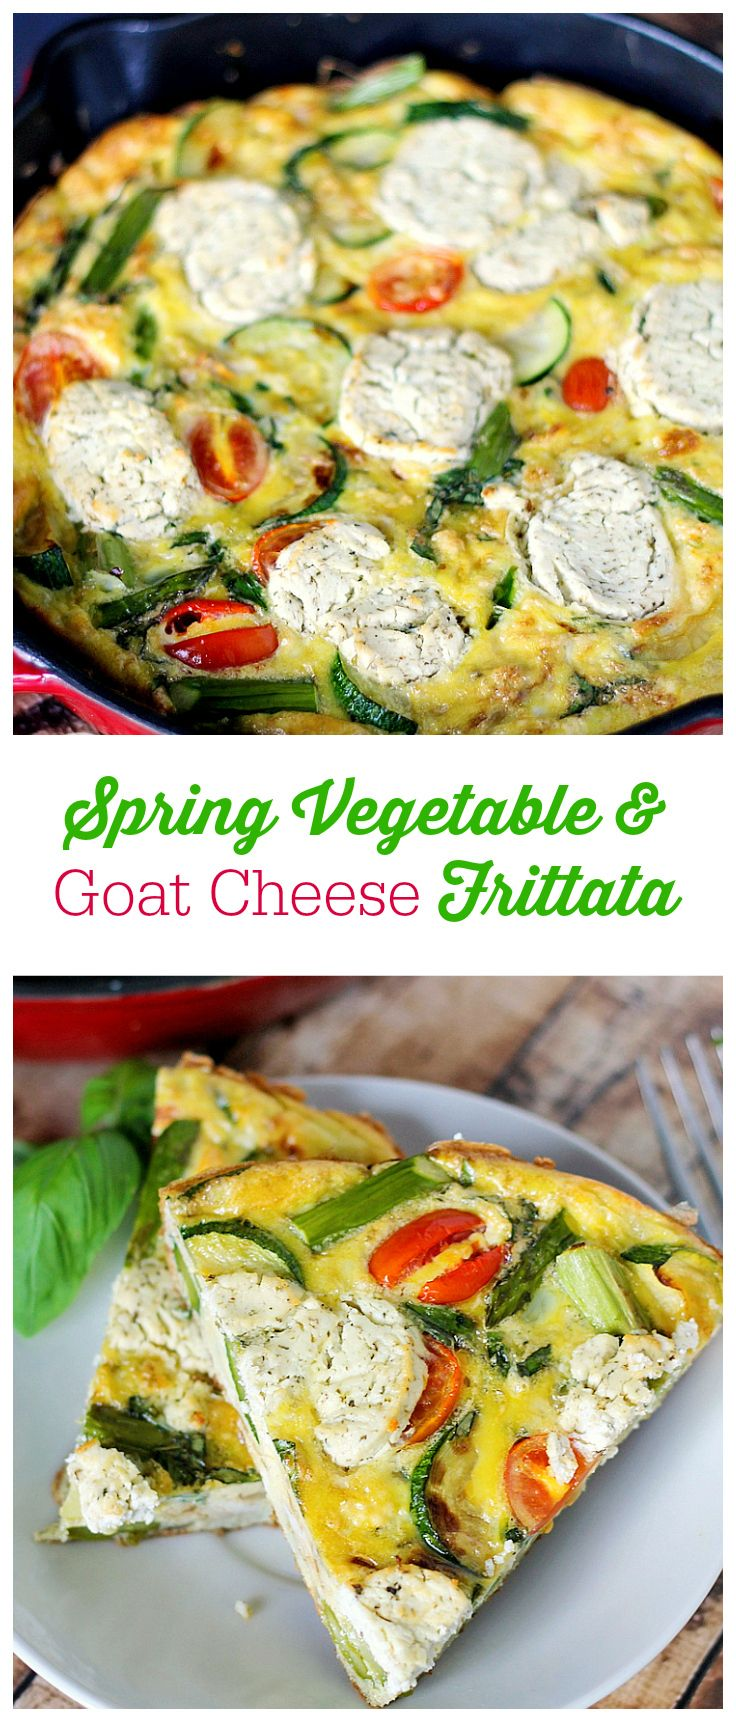 Spring Vegetable & Goat Cheese Frittata | Recipe | Goat Cheese, Goats ...